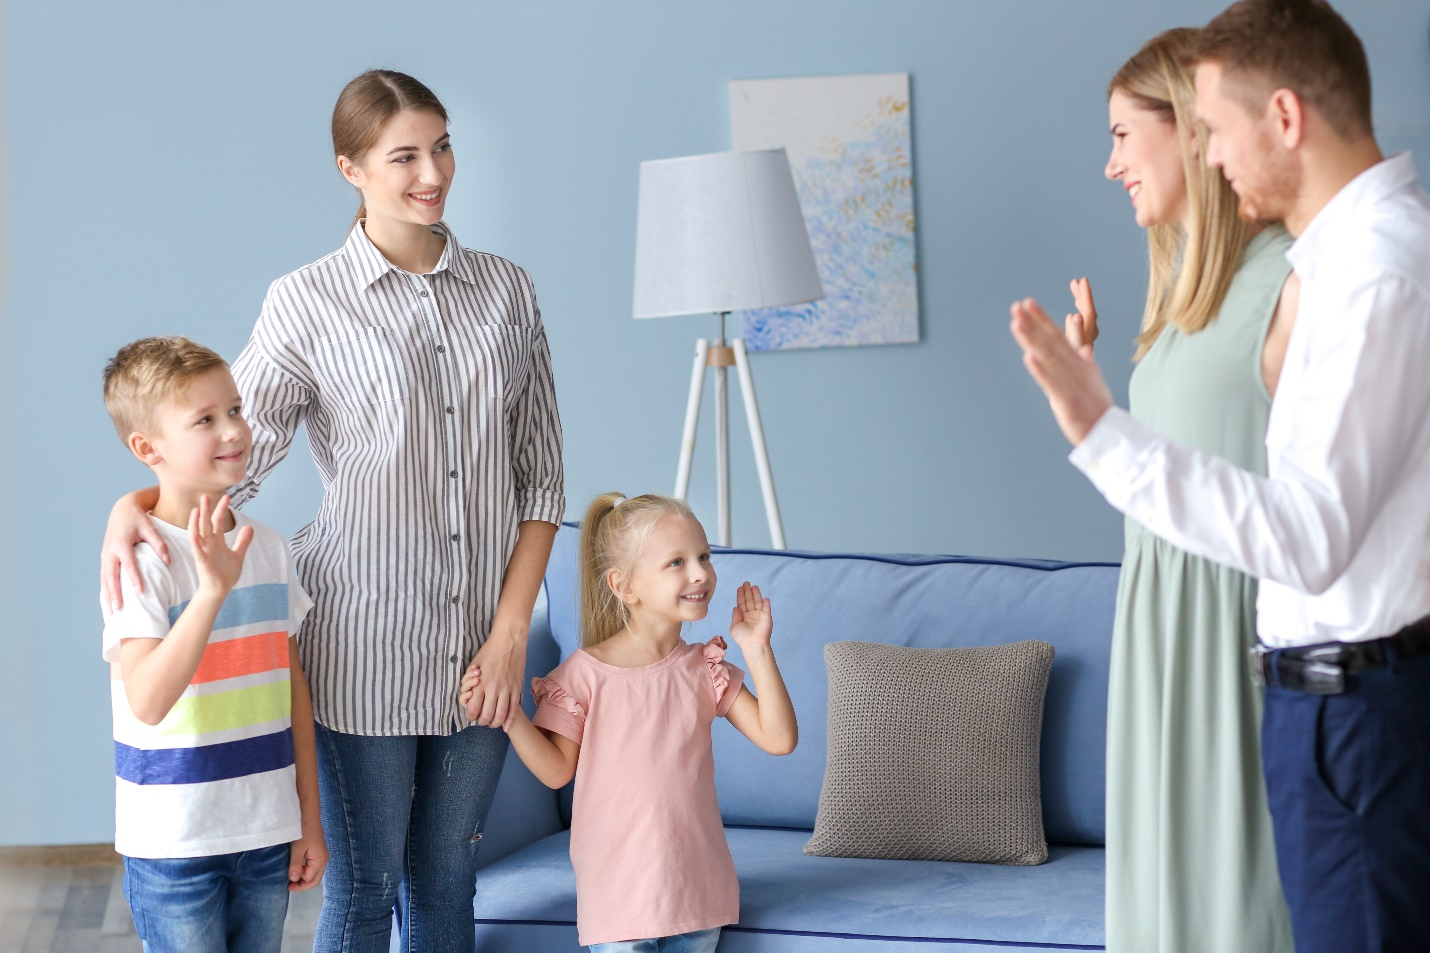 Parents leaving their children with nanny at home